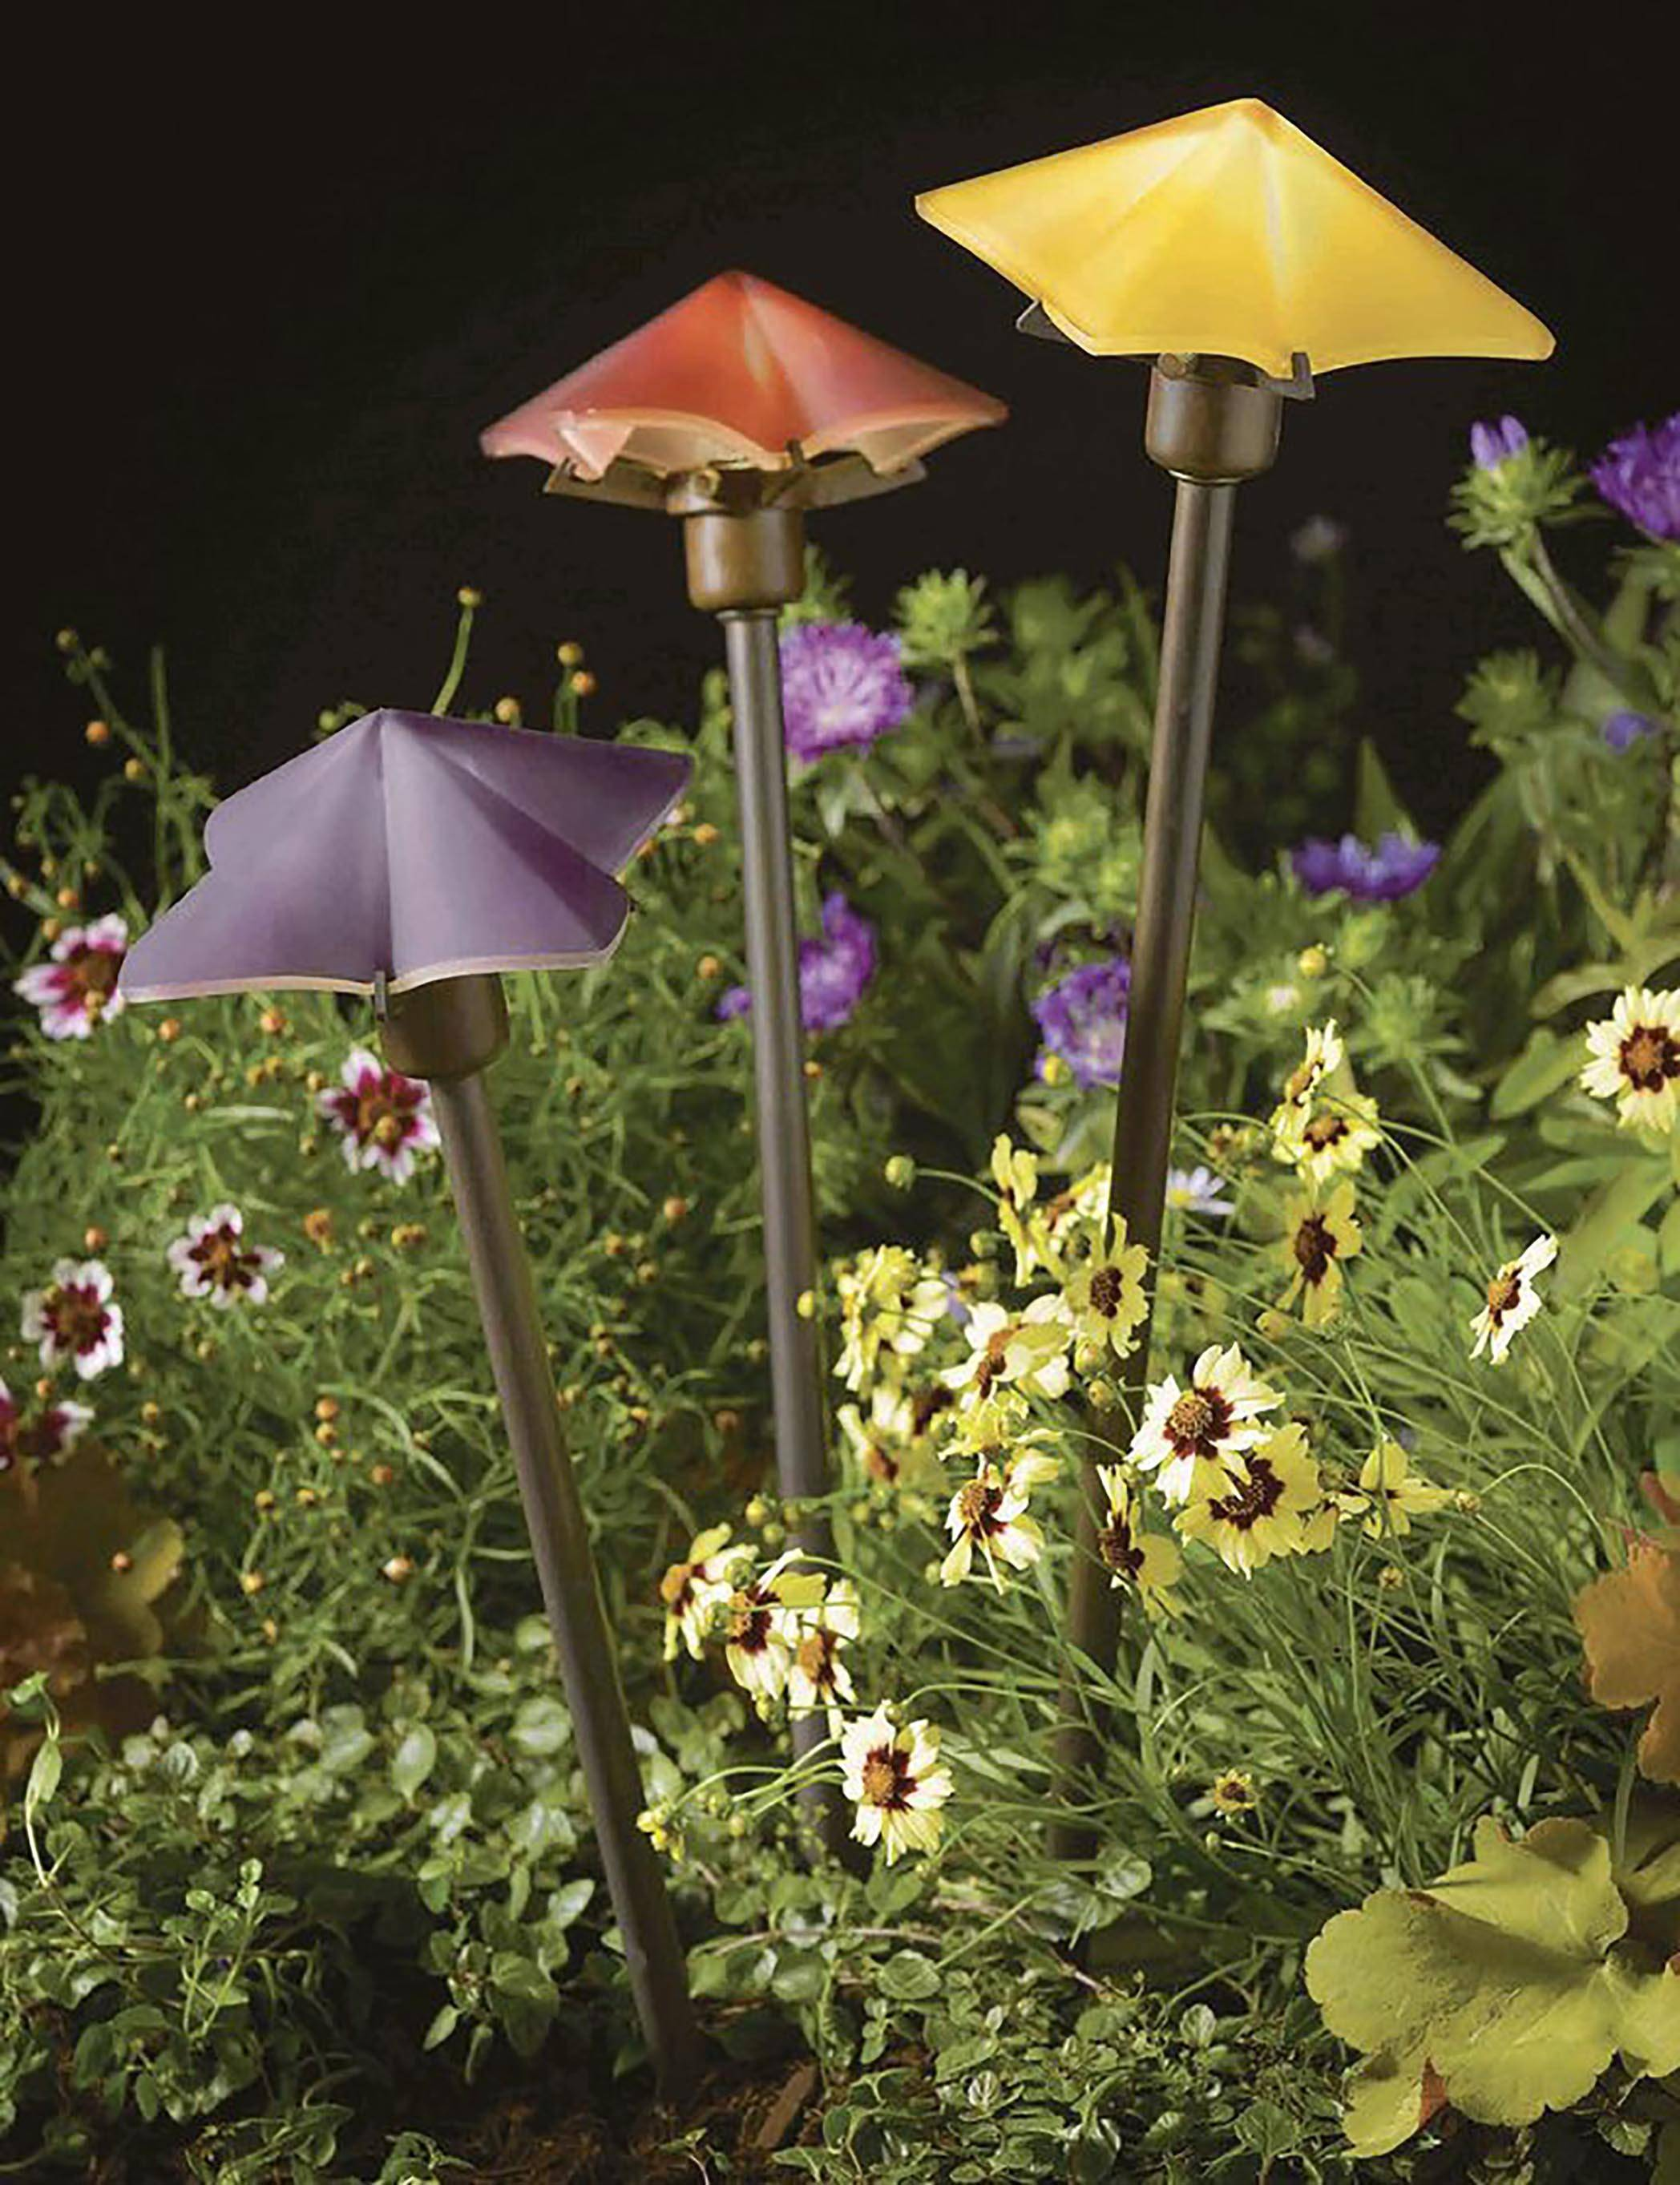 Some outdoor lighting choices can provide a pop of color whether or not the light is on.